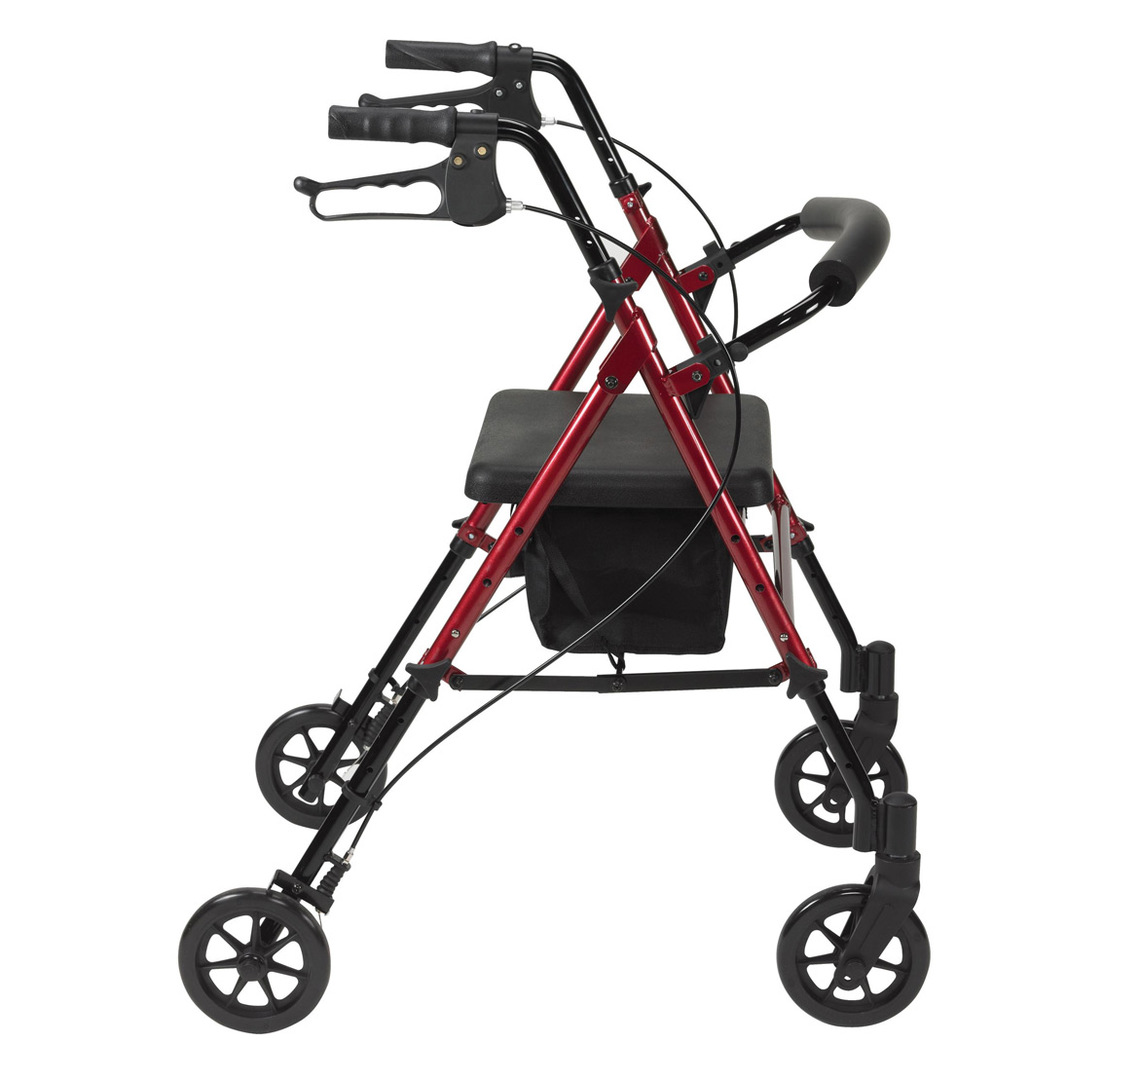 Adjustable Seat Height Rollator World Of Scooters Manchester